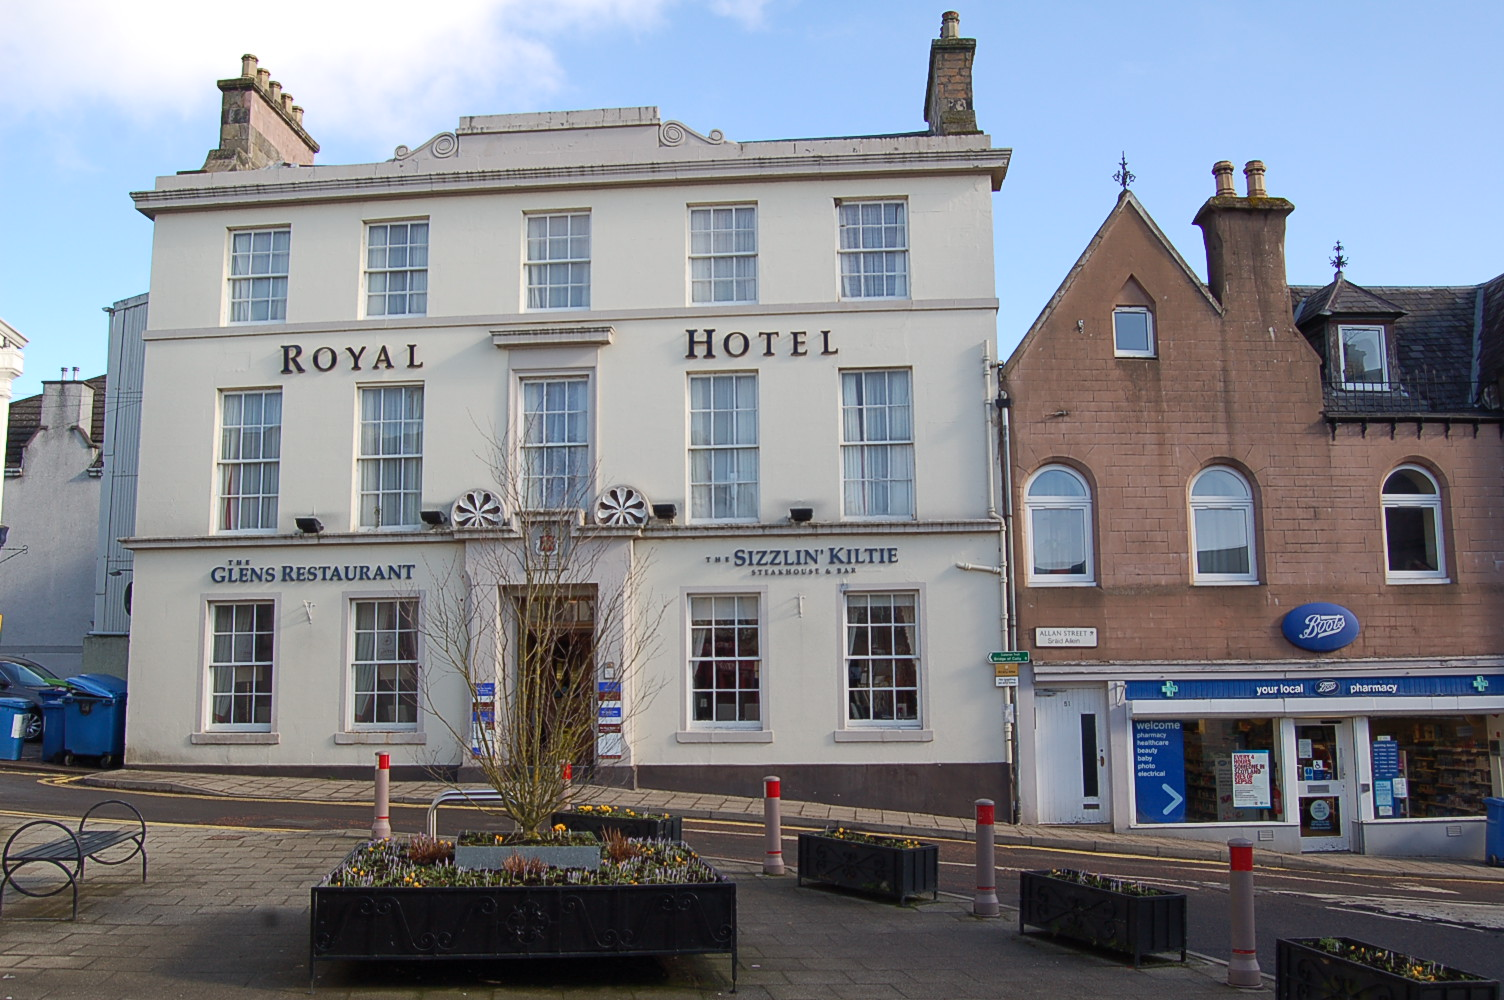 The Royal Hotel